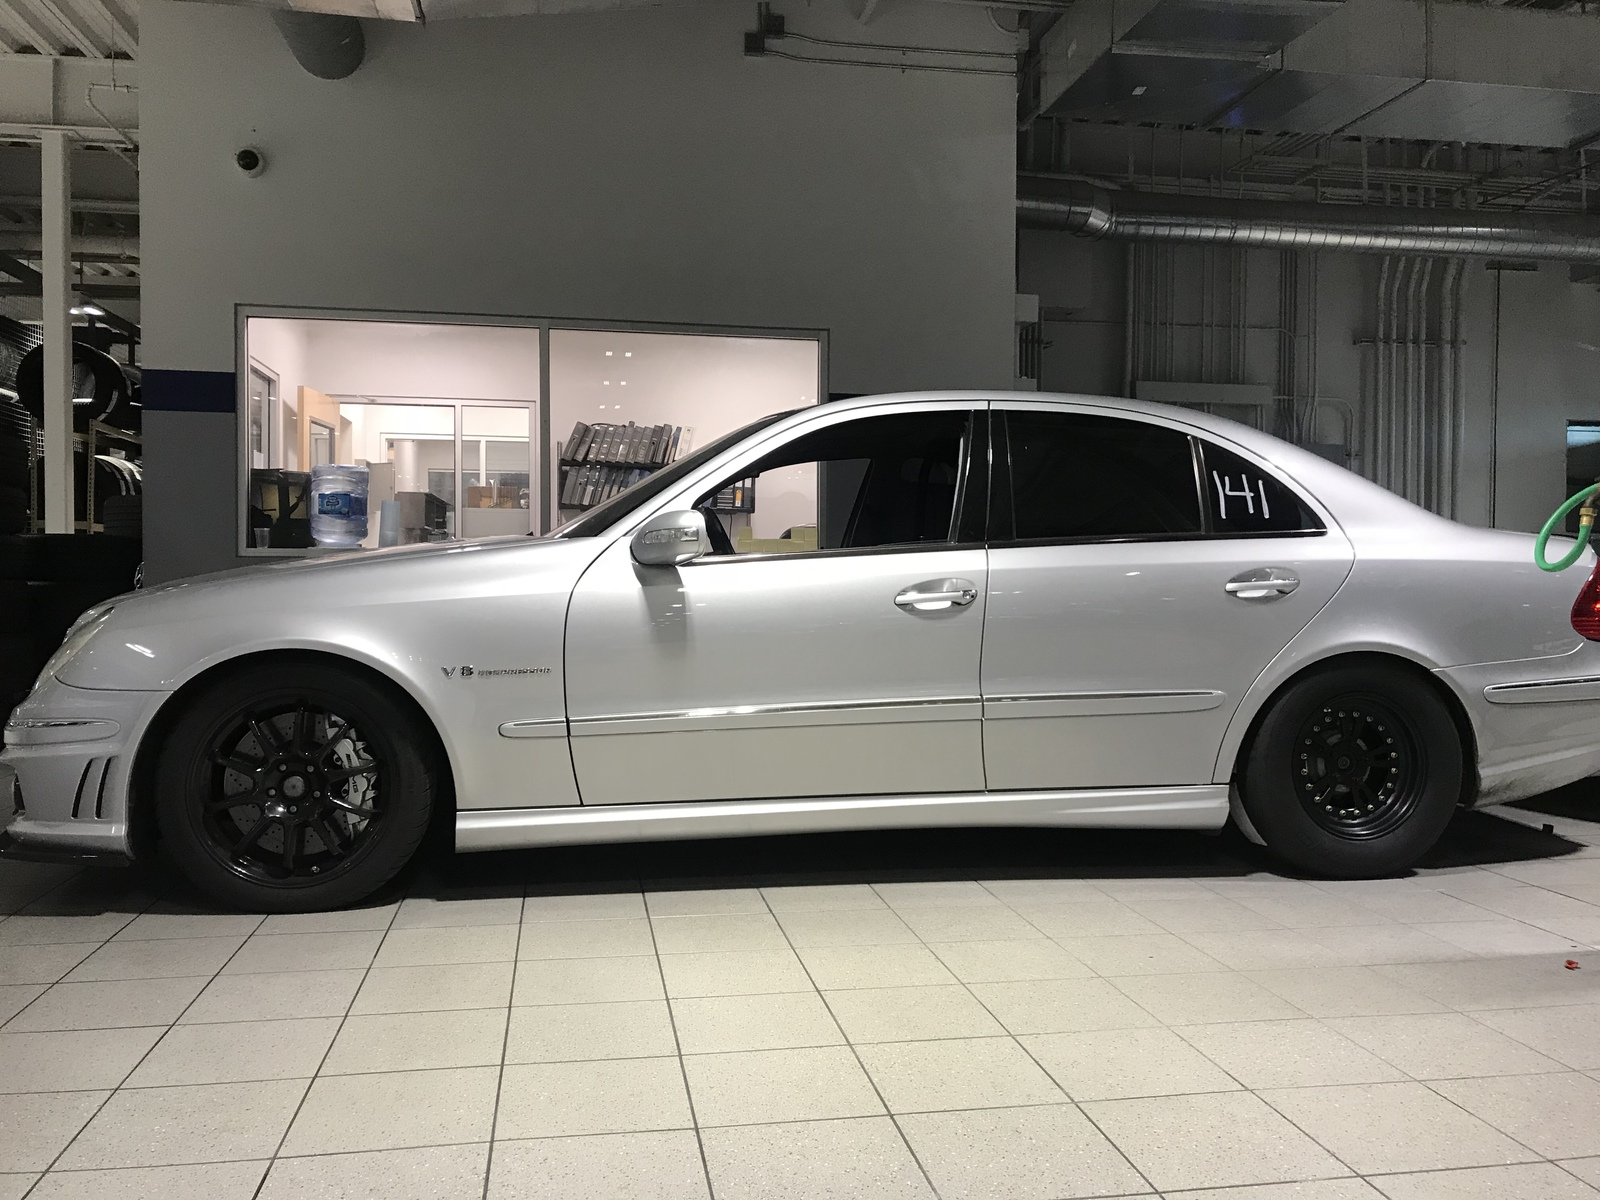 2006 Silver Mercedes-Benz E55 AMG  picture, mods, upgrades